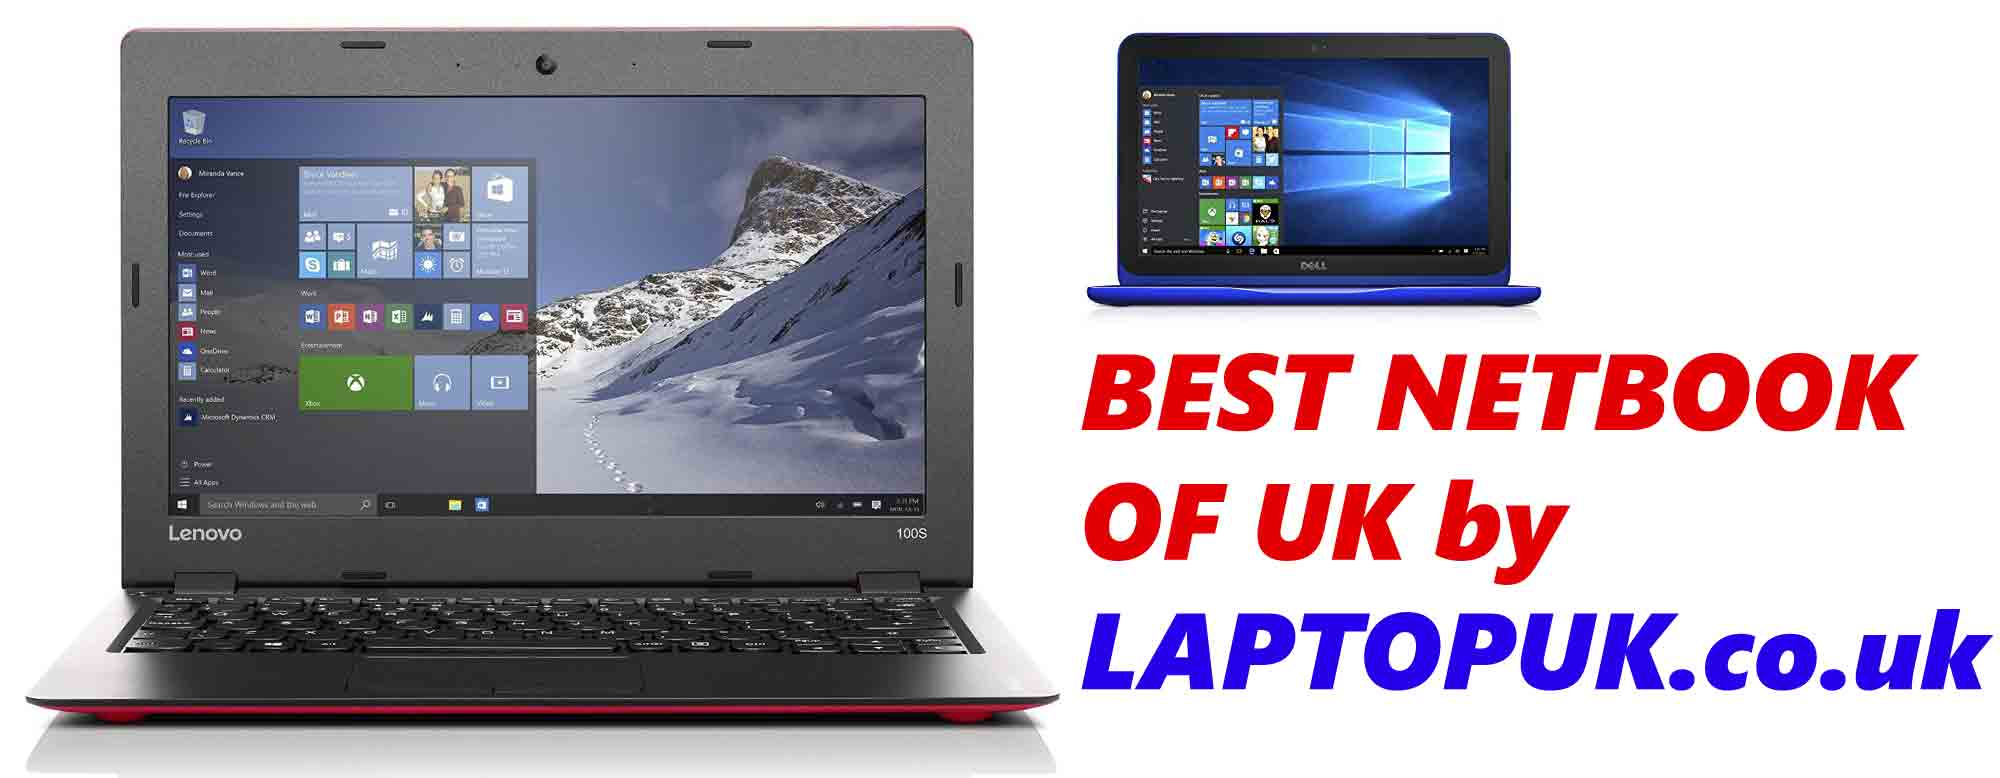 best netbook uk 2017